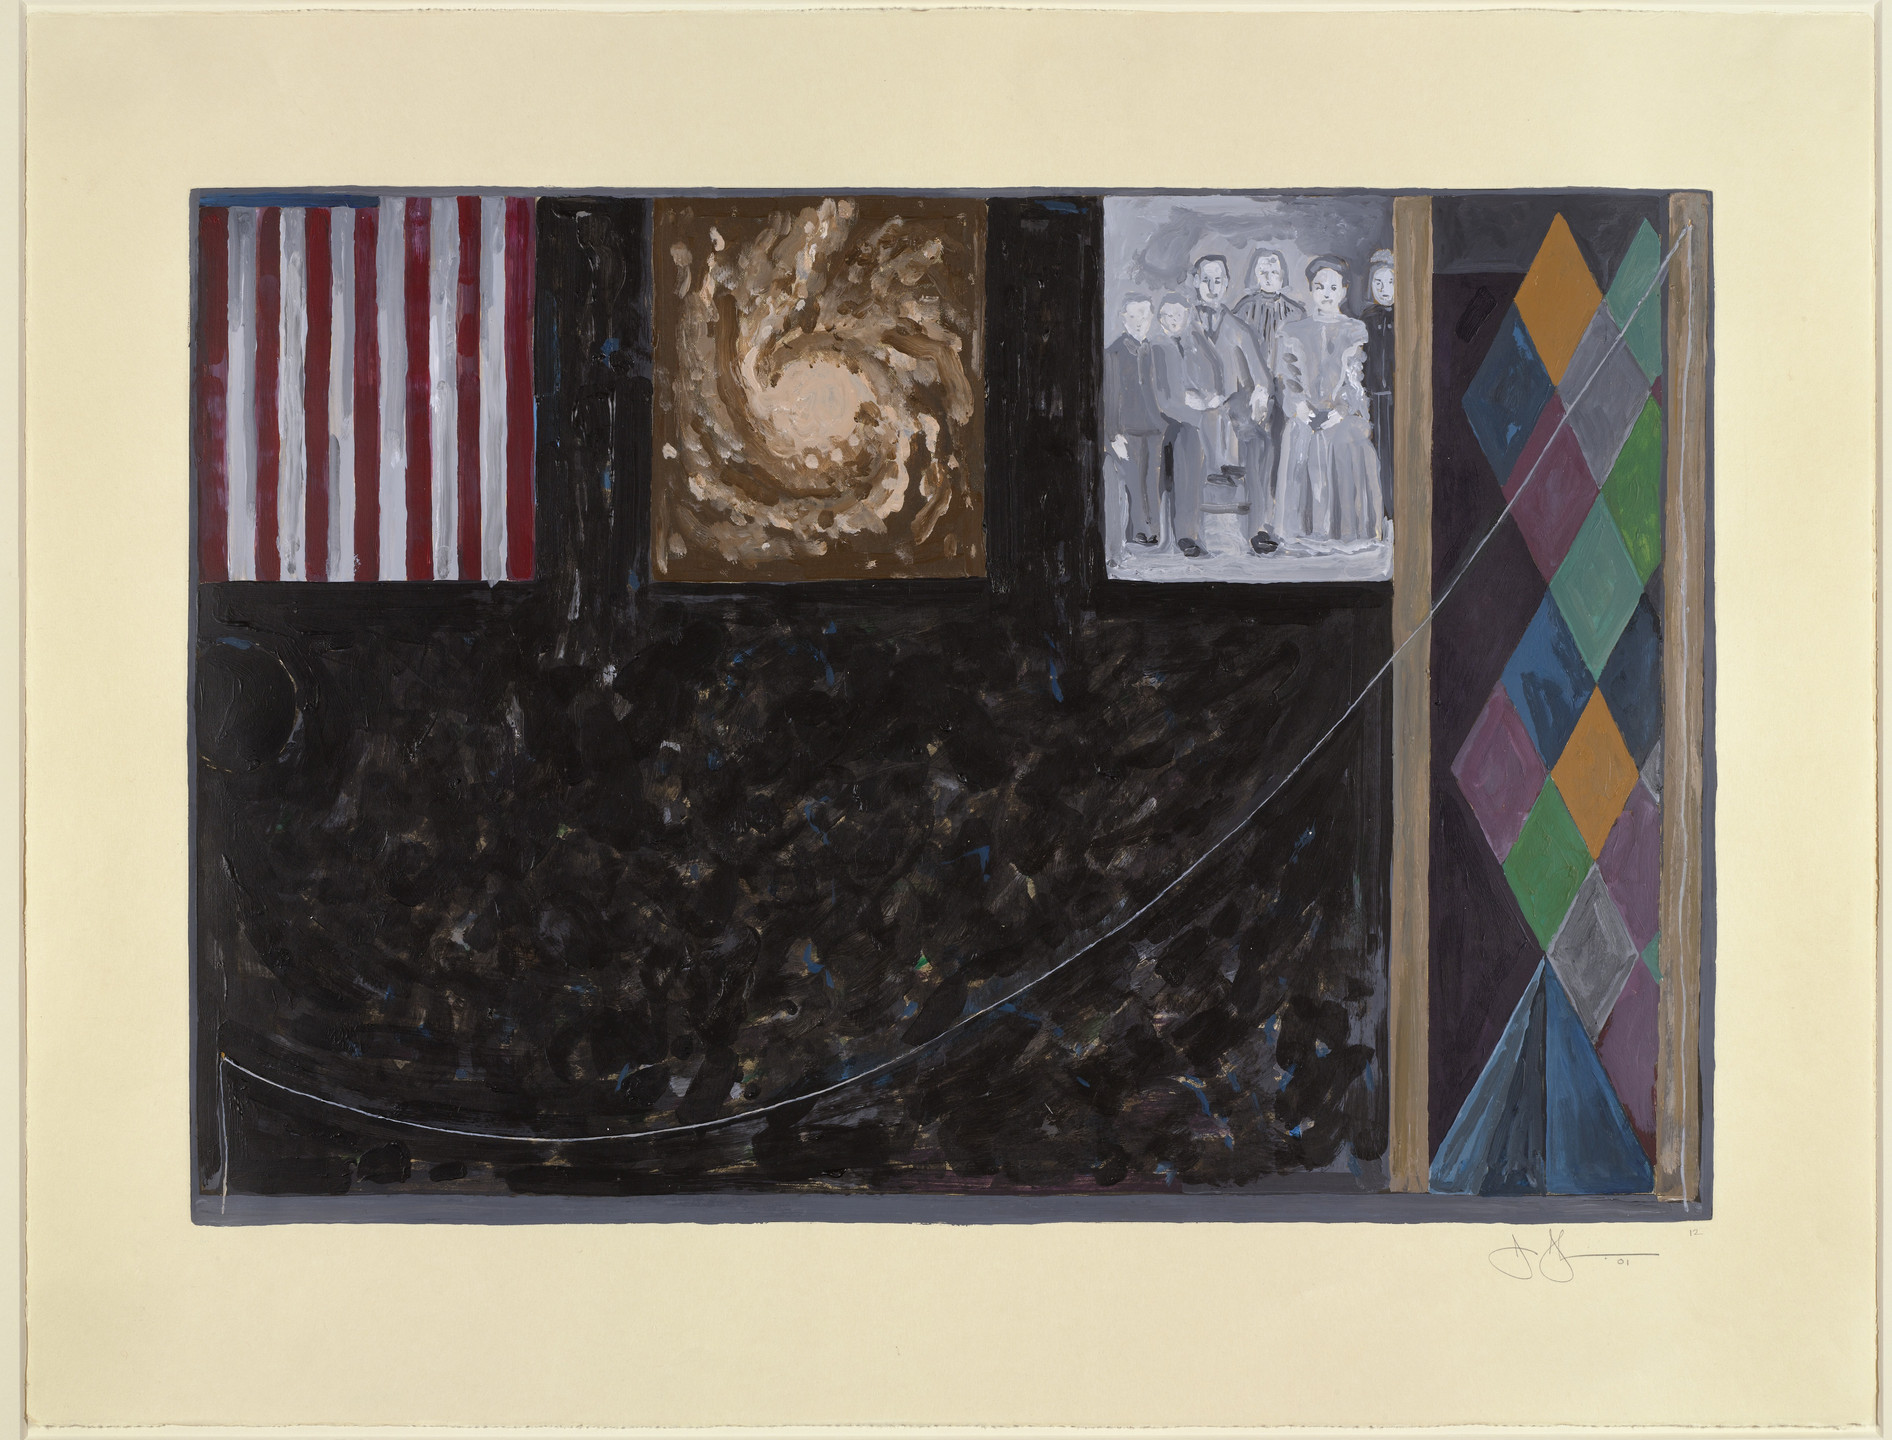 Jasper Johns. Untitled. 2001